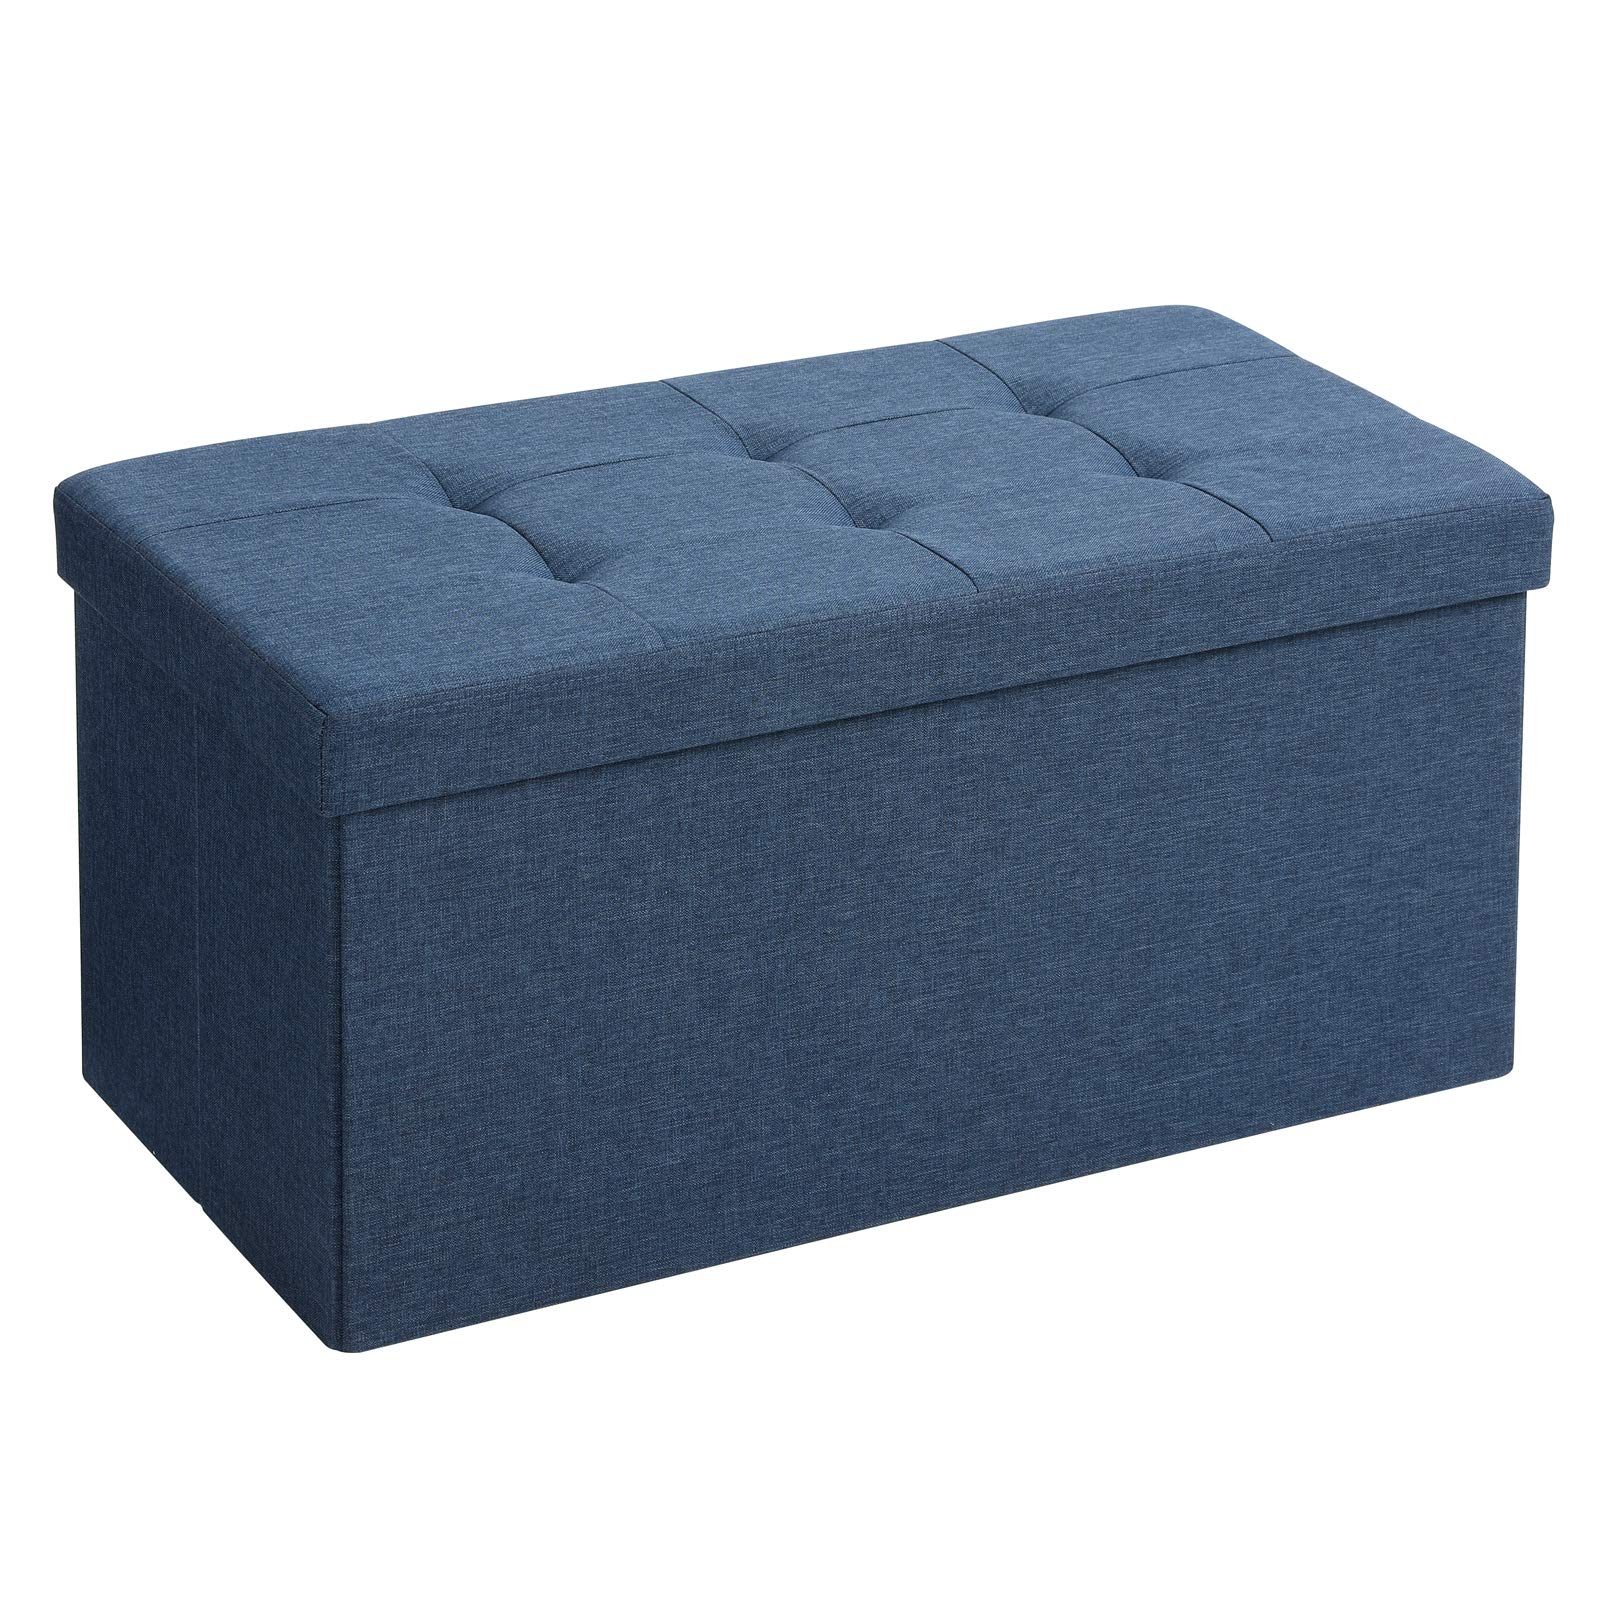 SONGMICS Storage Ottoman Bench, Chest with Lid, Foldable Seat, Bedroom, Hallway, Space-saving, 80L Capacity, Hold up to 660 lb, Padded, Navy Blue ULSF47IN by SONGMICS